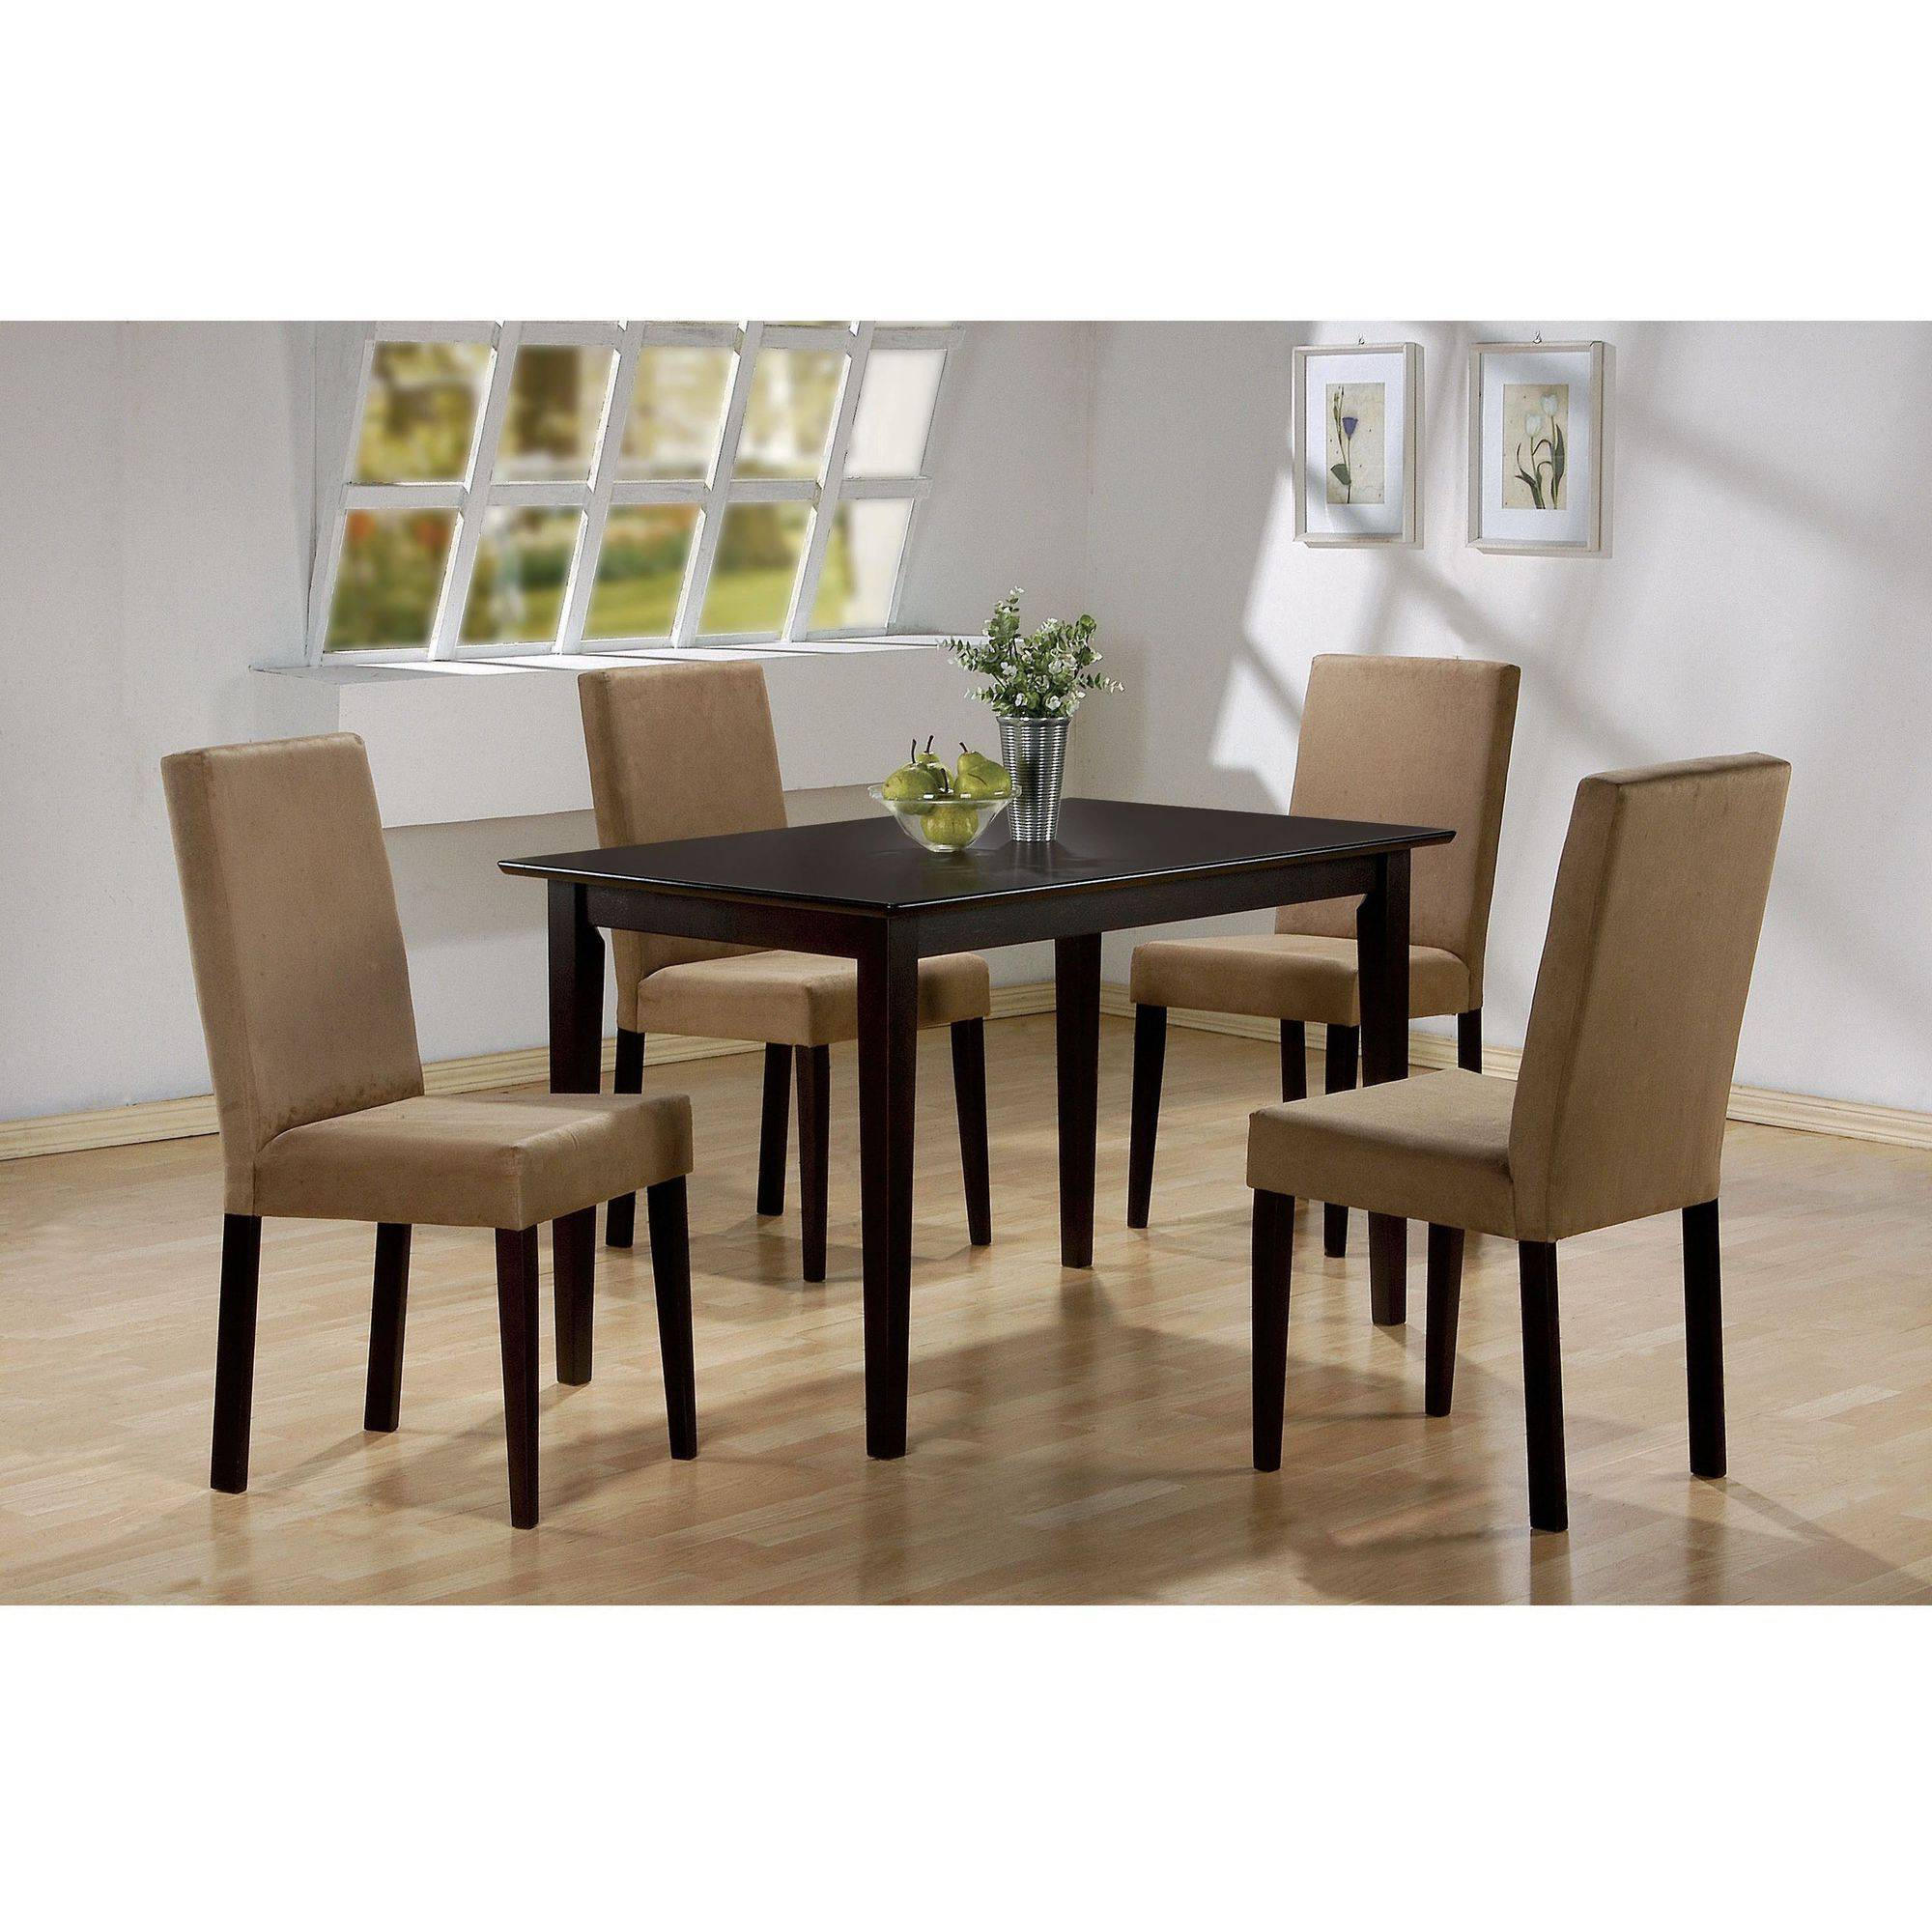 Superbe Coaster Company Clayton Dining Table, Chairs Sold Separately   Walmart.com